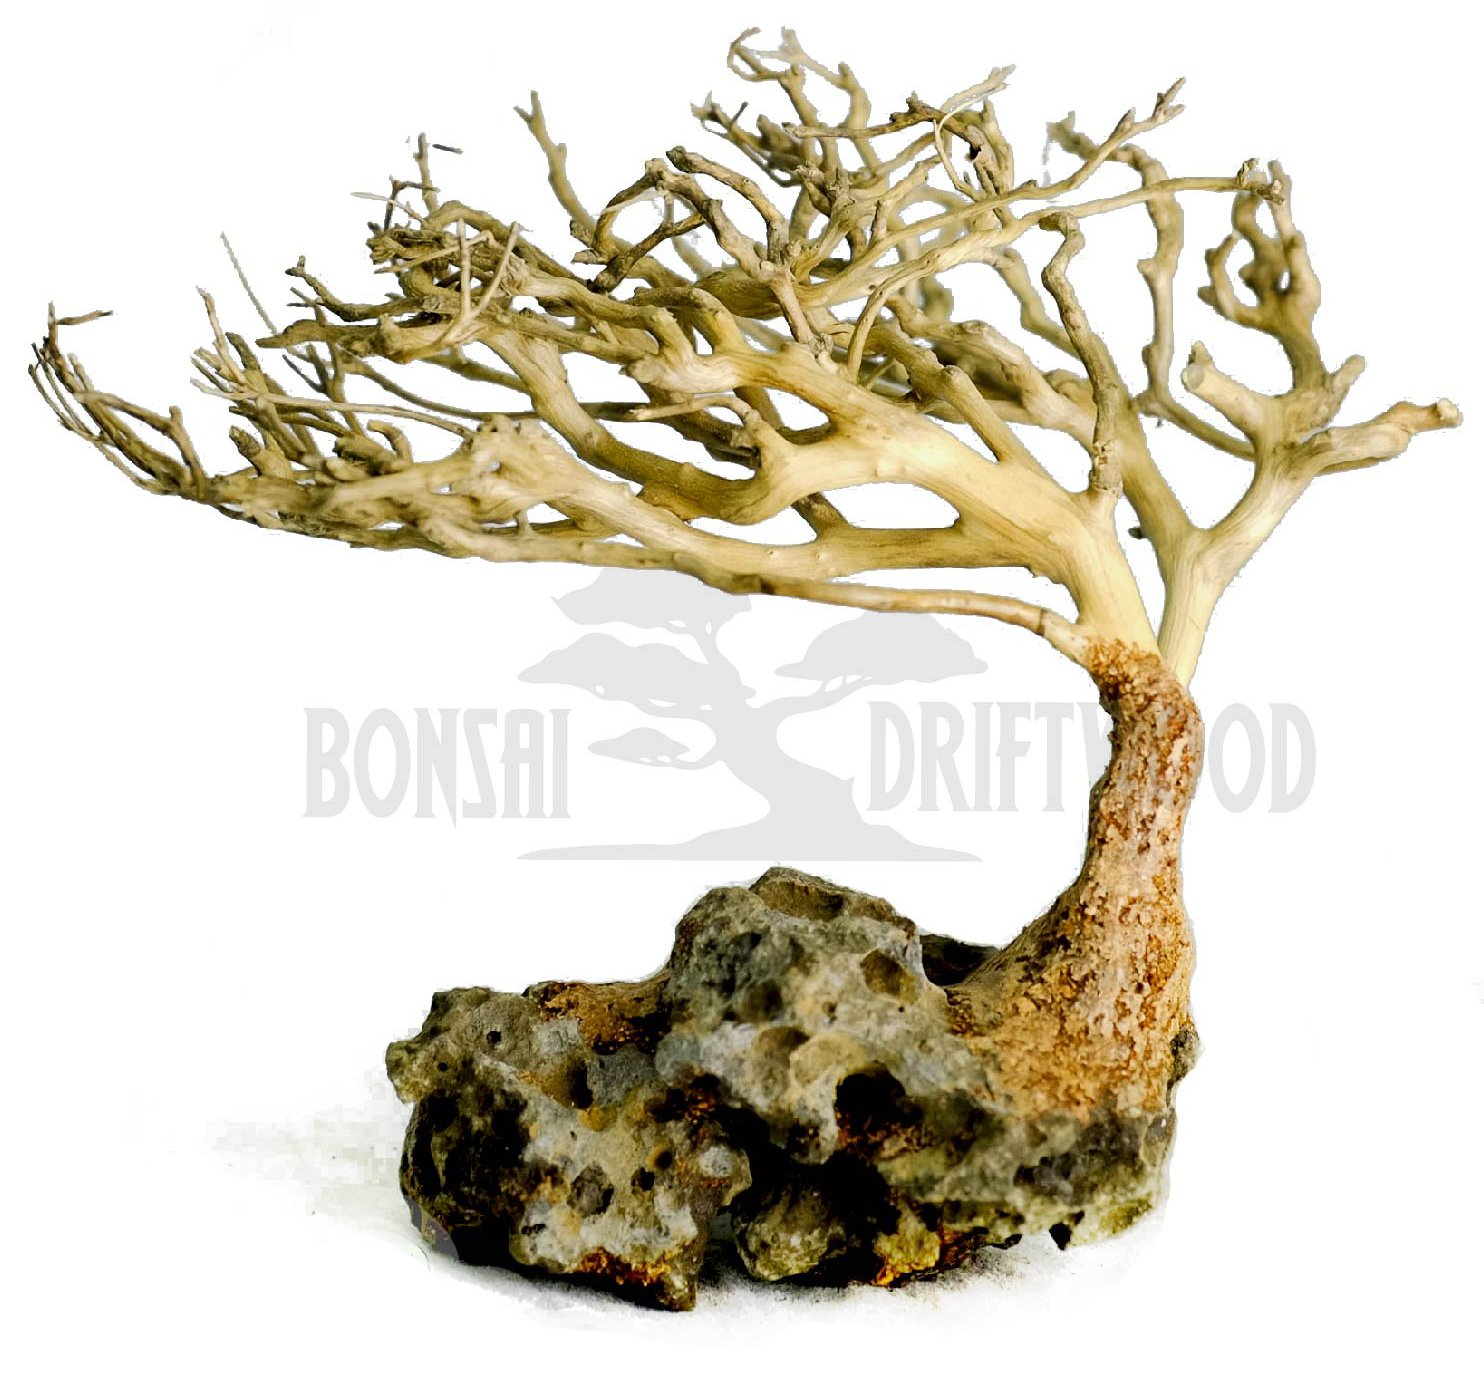 Bonsai Driftwood Aquarium Tree (5 Inch Height) Natural, Handcrafted Fish Tank Decoration | Helps Balance Water pH Levels, Stabilizes Environments | Easy to Install by Bonsai Driftwood